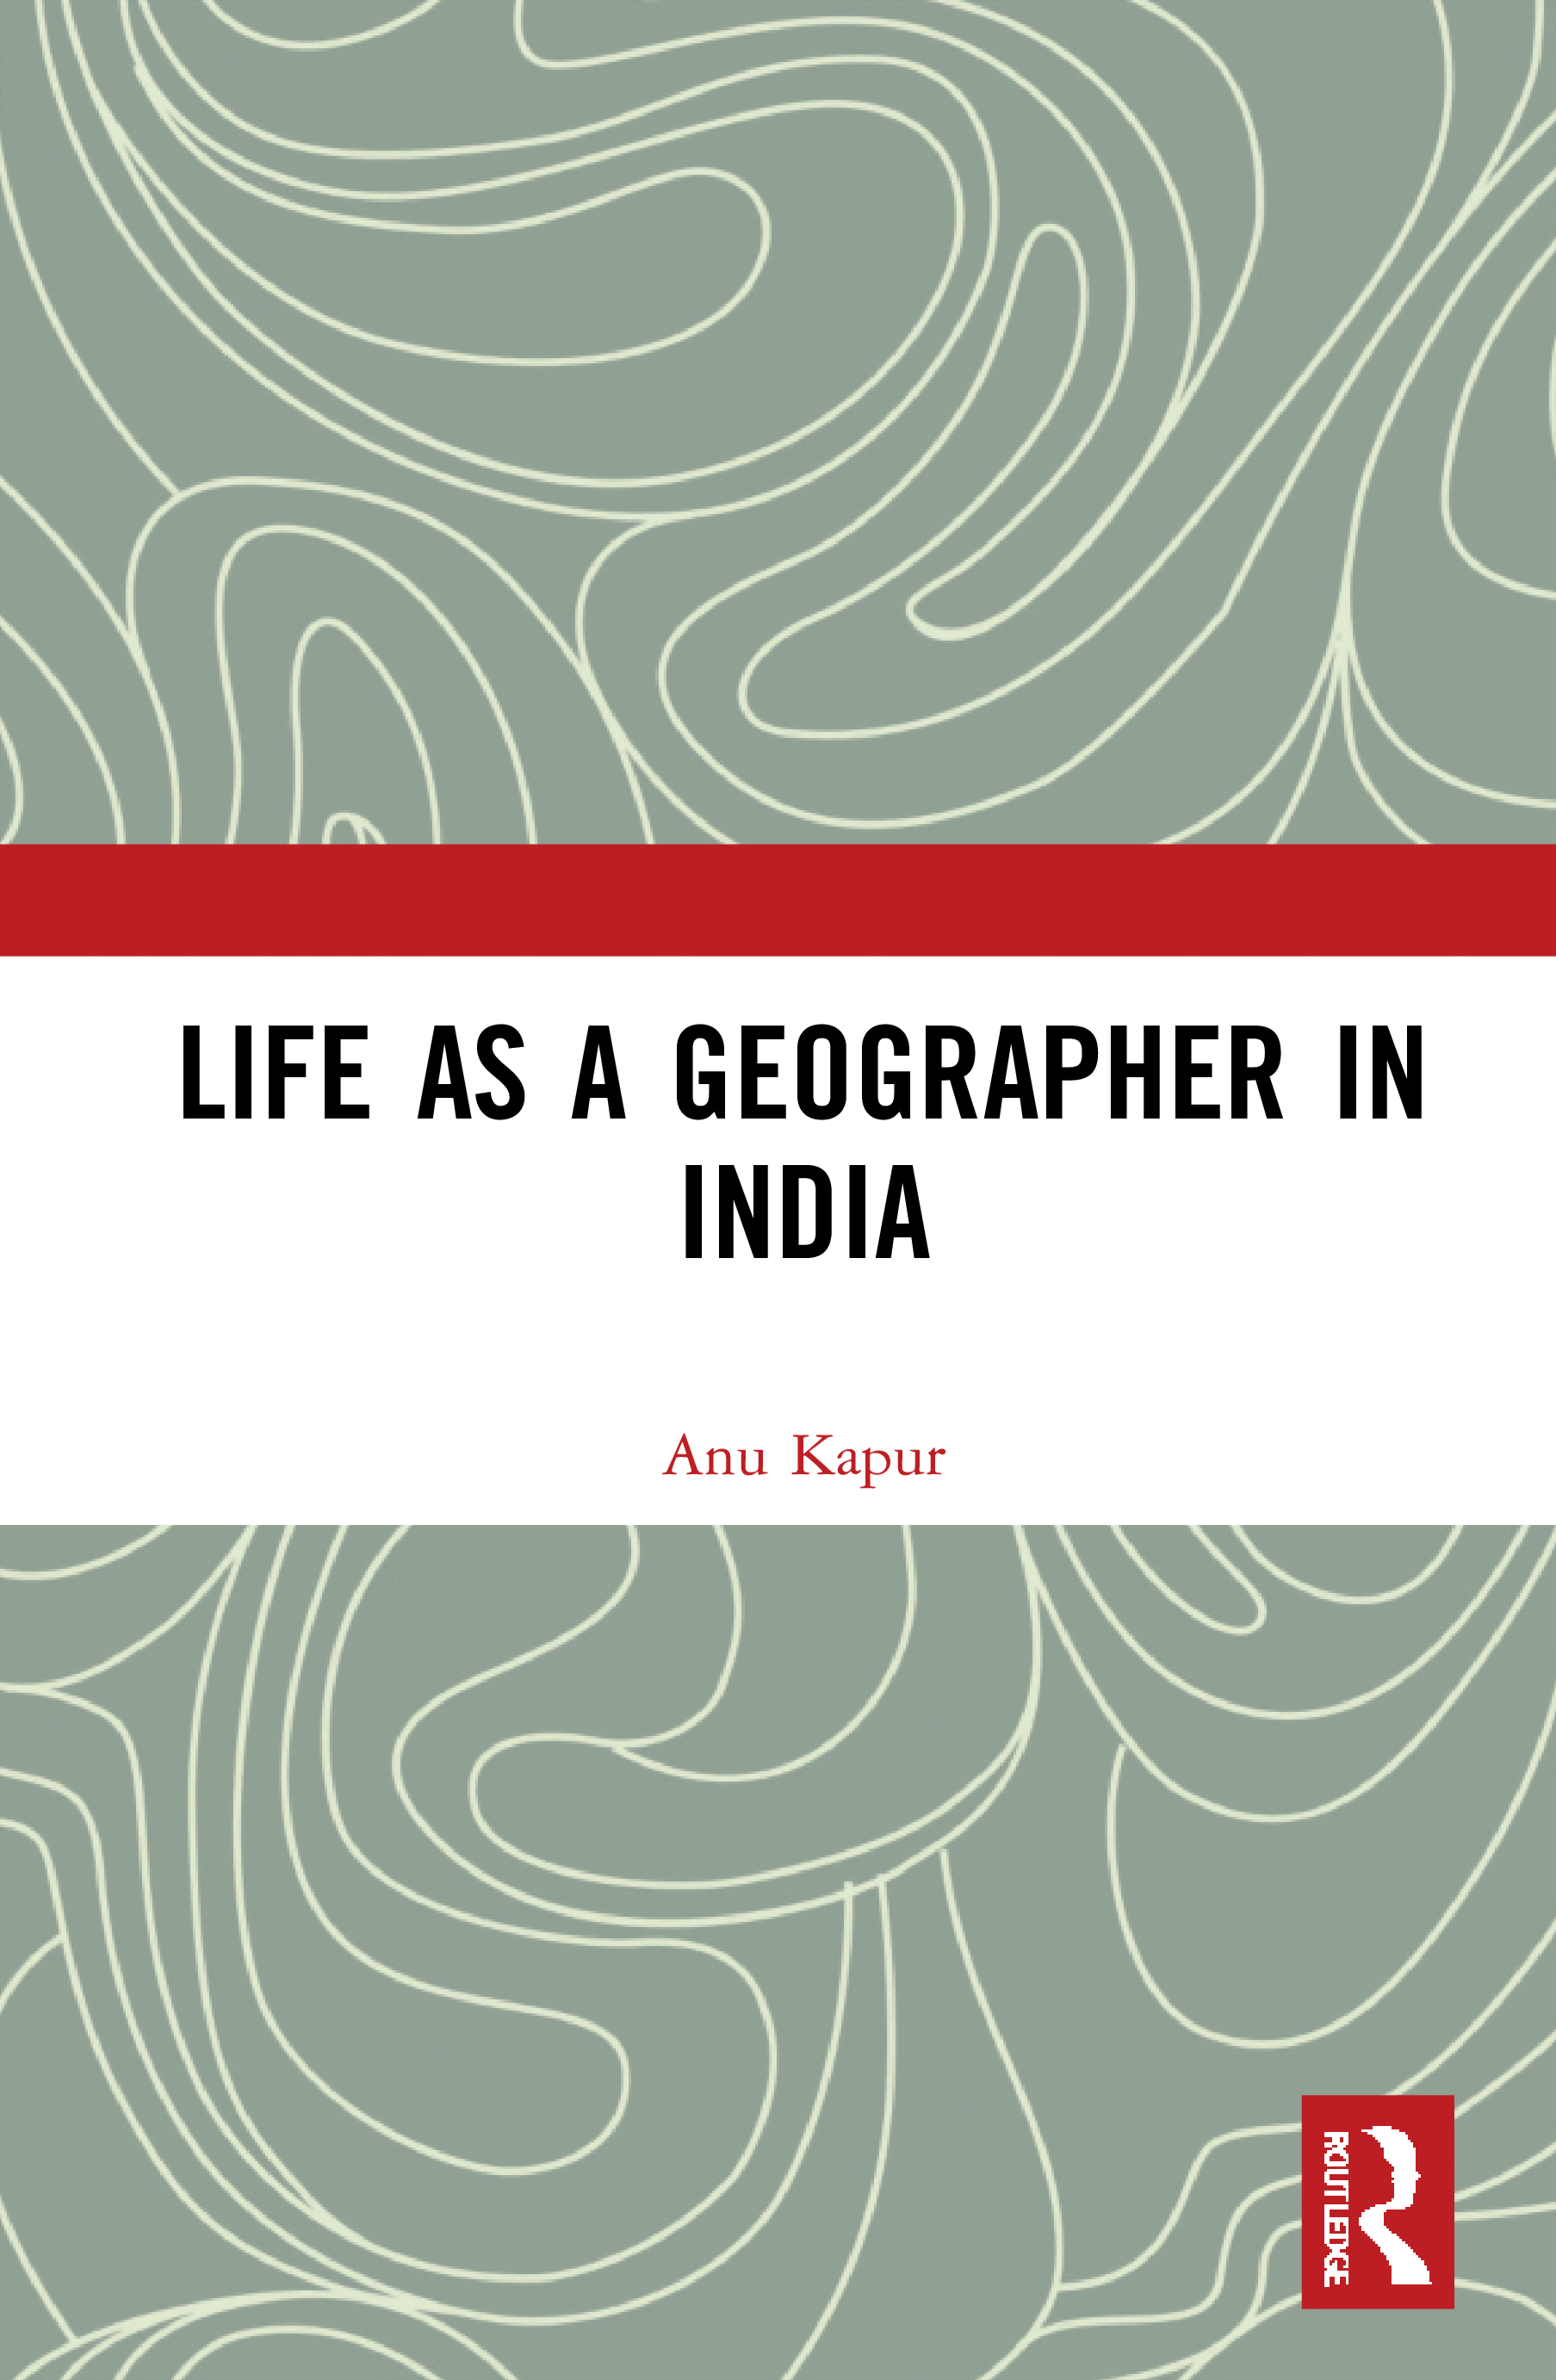 The life and works of 22 geographers in India